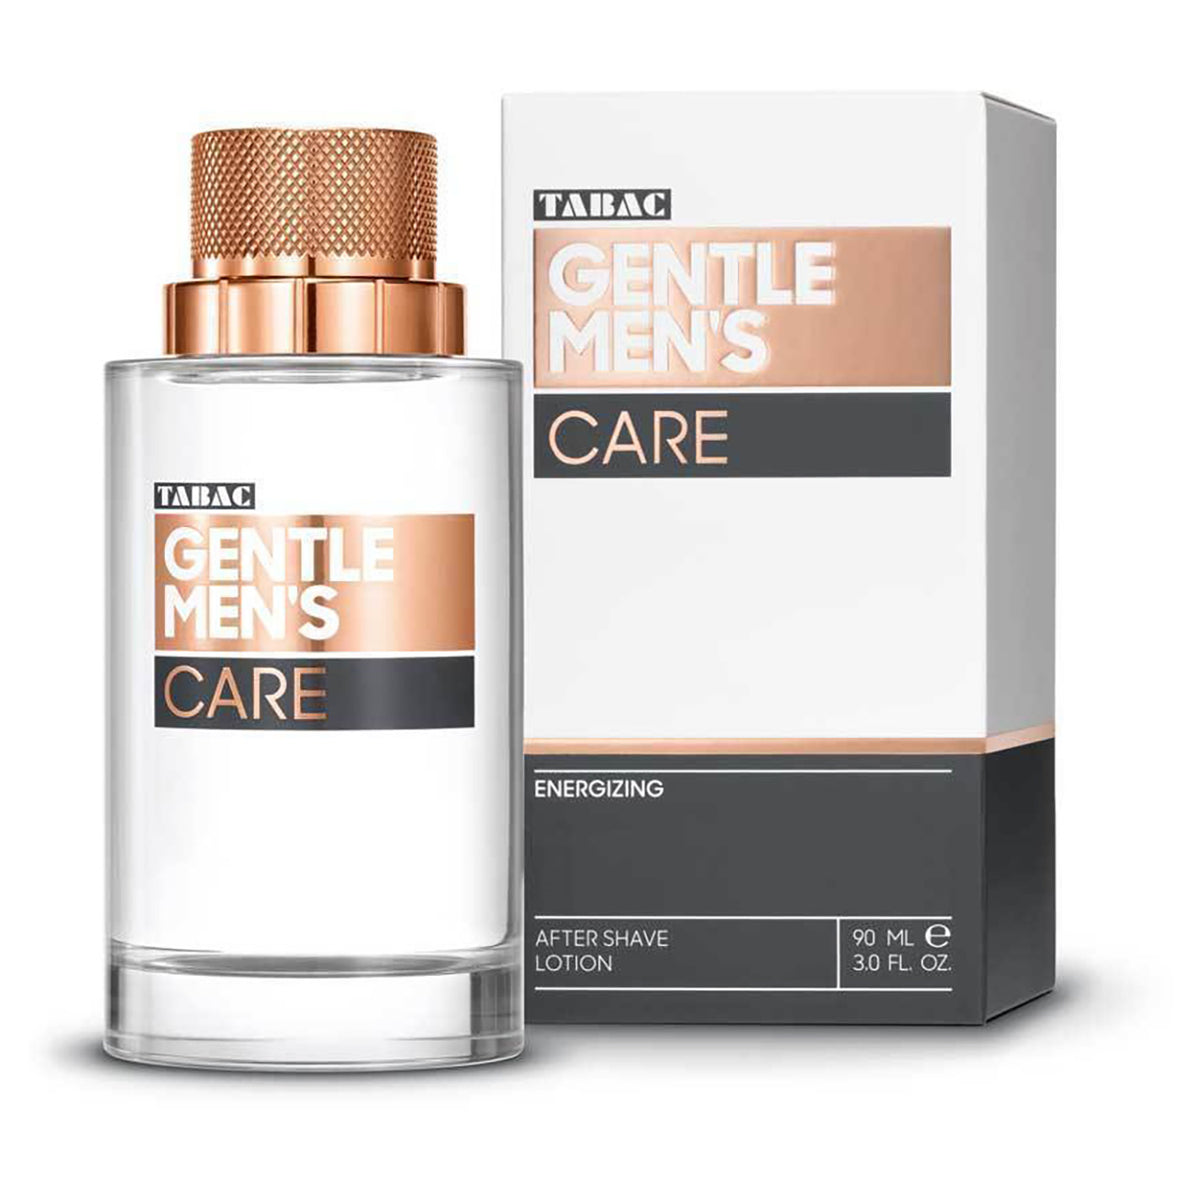 Tabac Gentle Men's Care After Shave Lotion 90ml